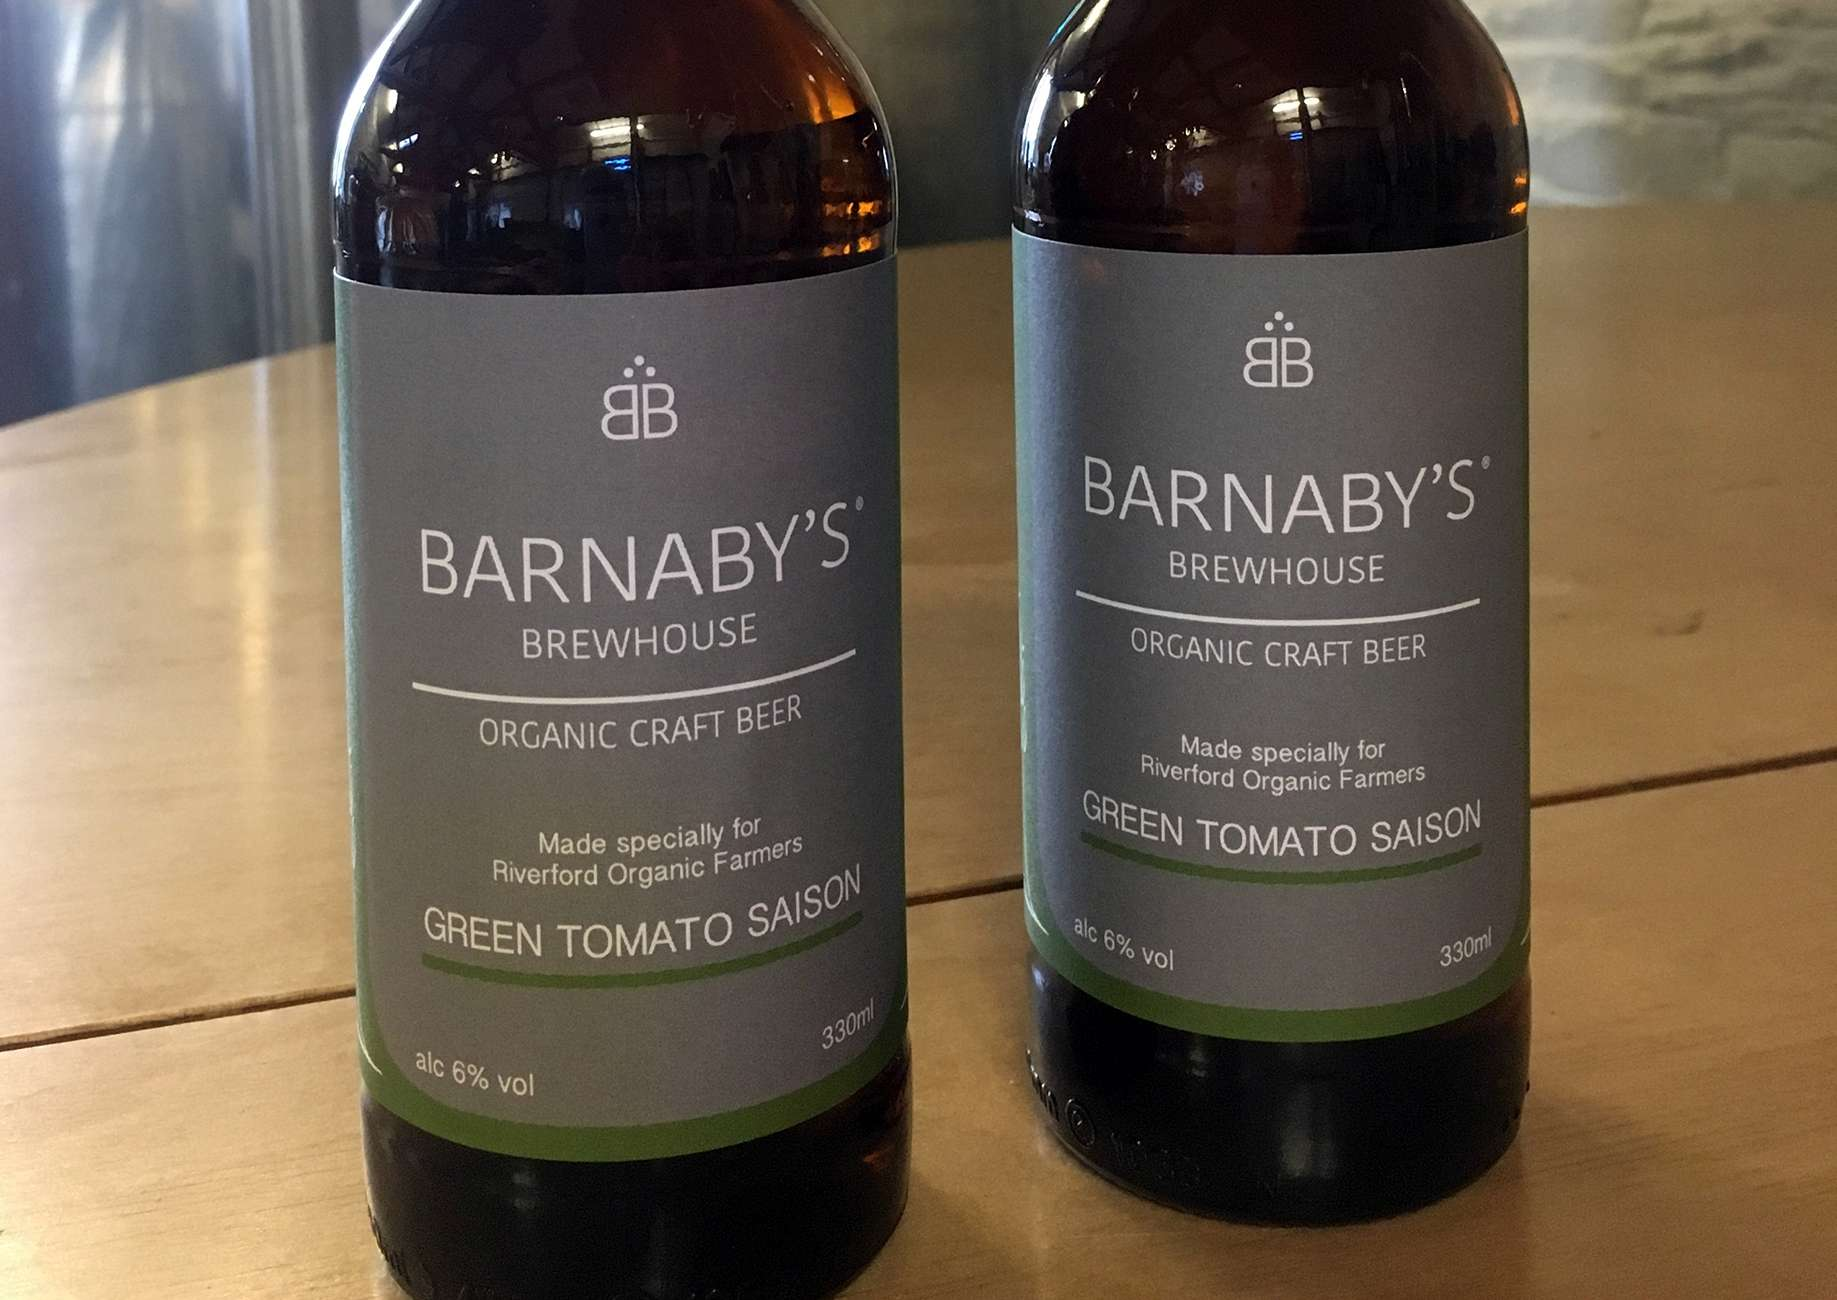 barnabys-brewhouse-riverford-organic-gren-tomato-saison-beer